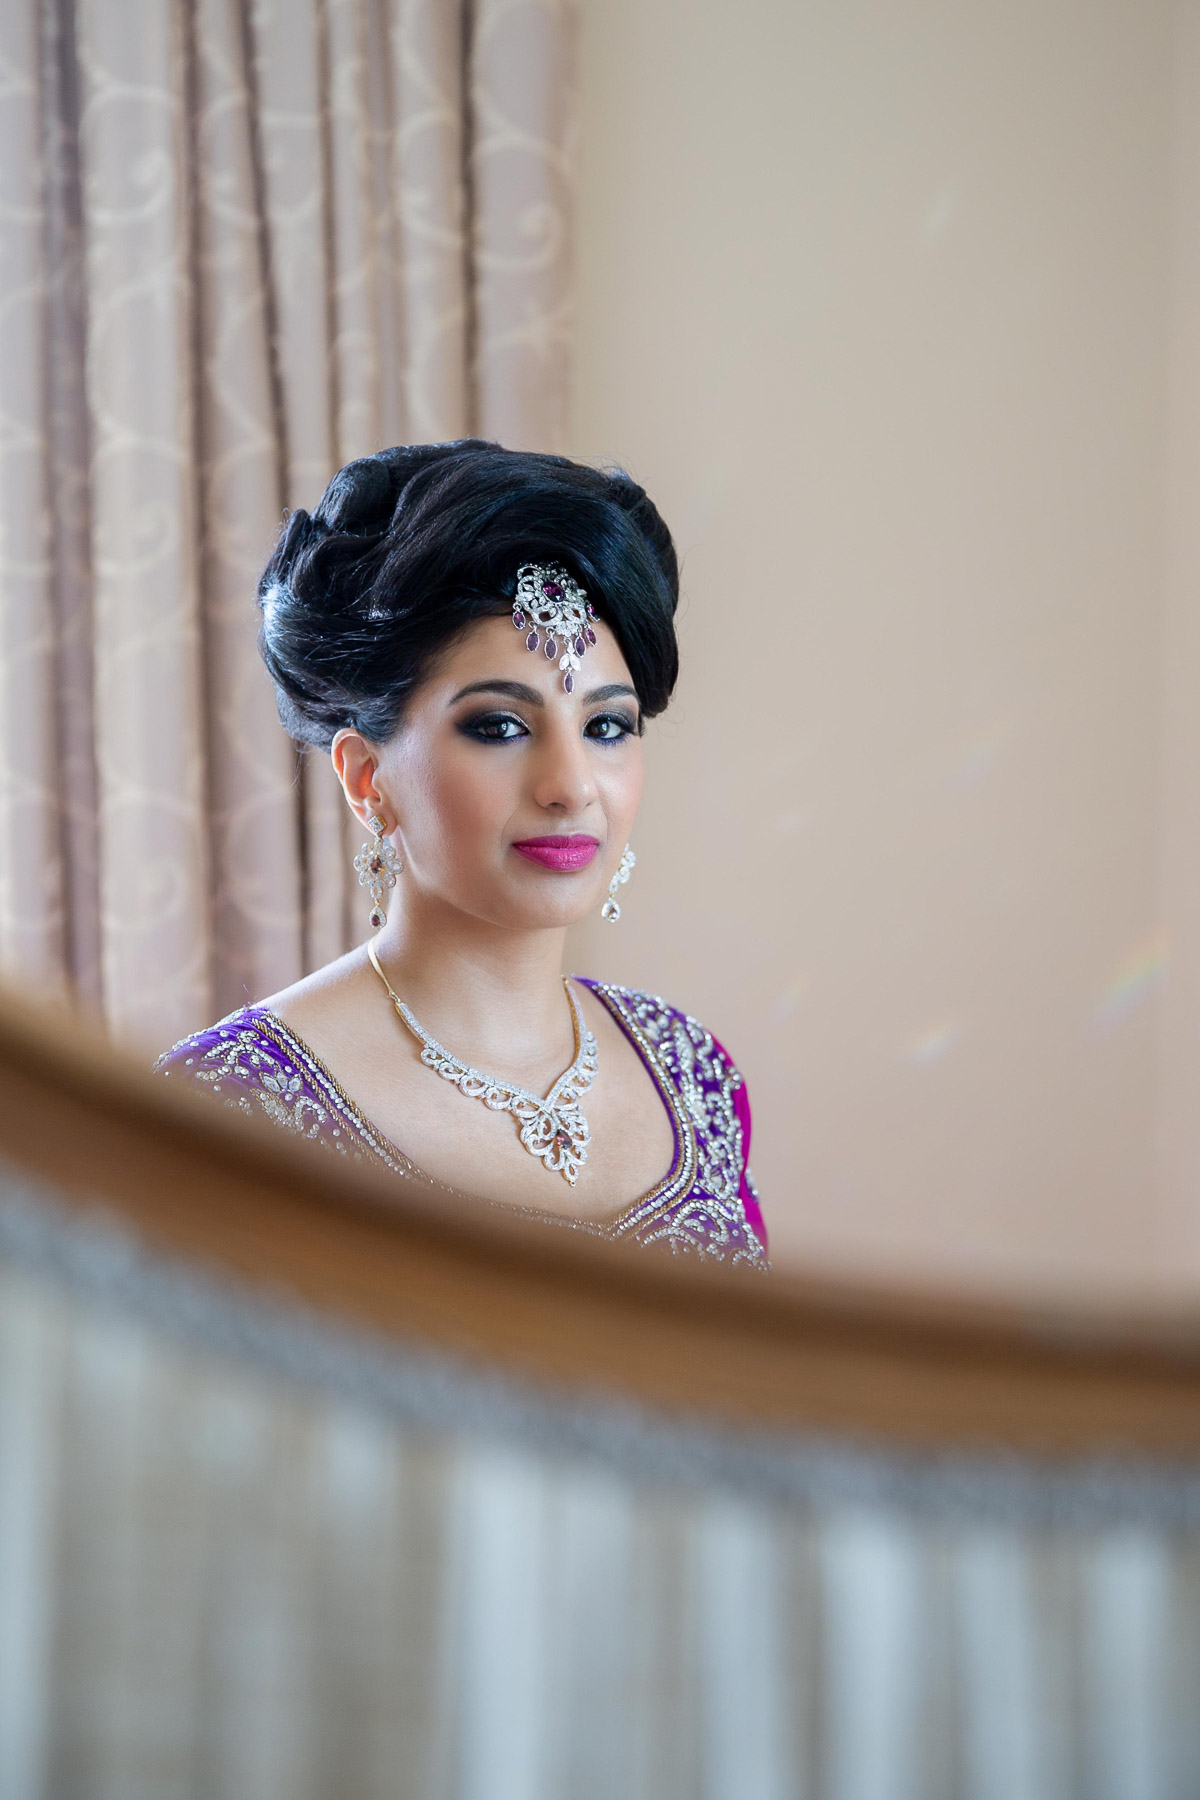 Female Wedding Photographer Bristol